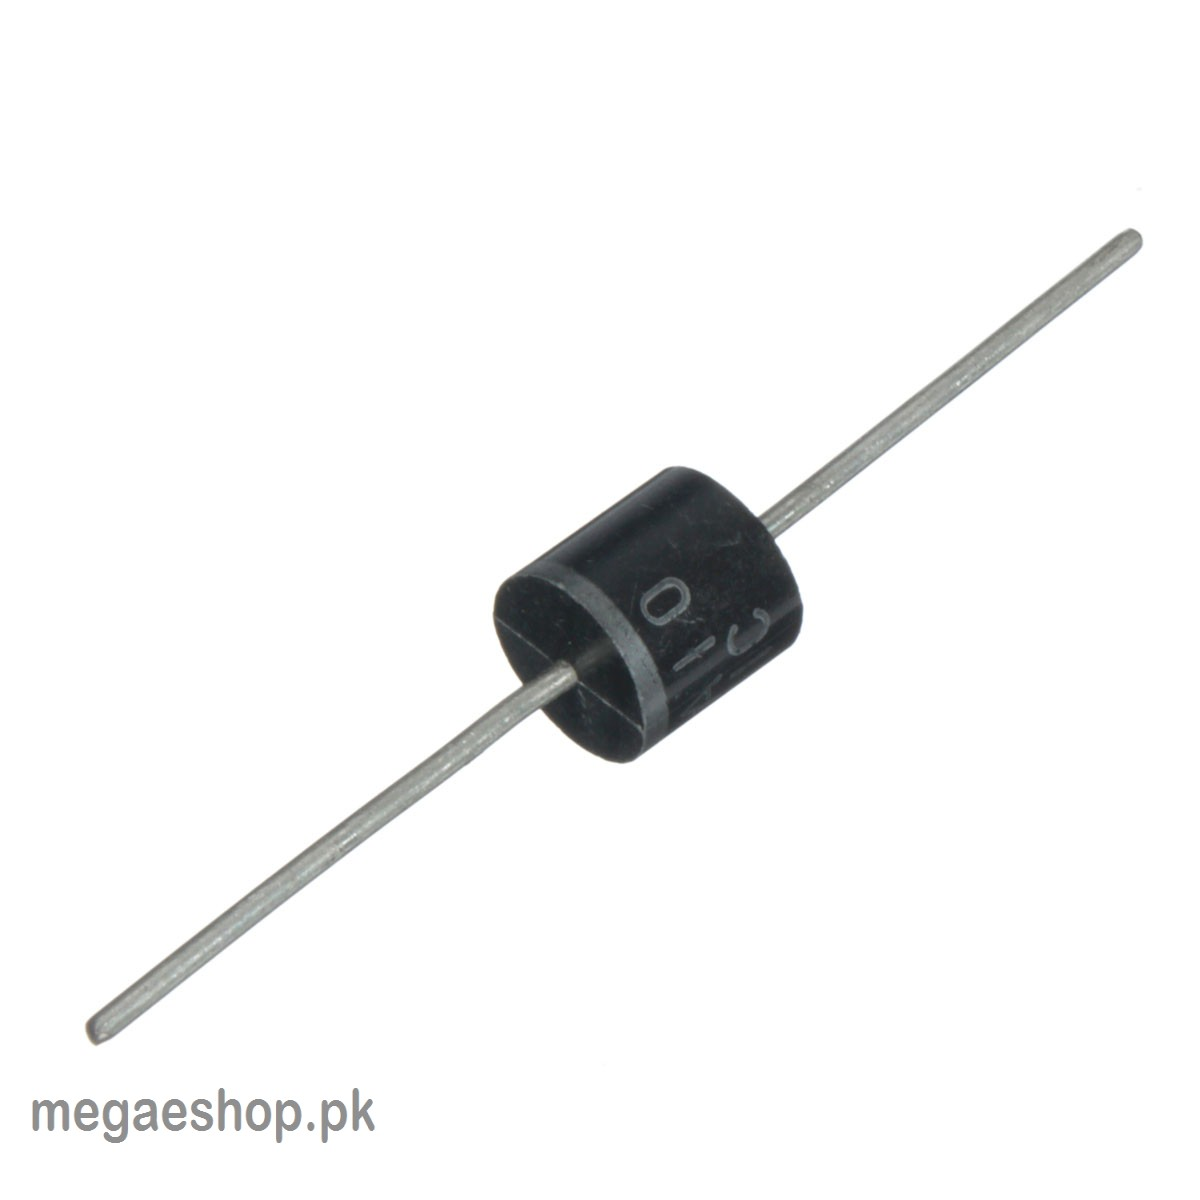 10a10 10 Amp V 10a 1kv Axial Rectifier Diode 22a Buy